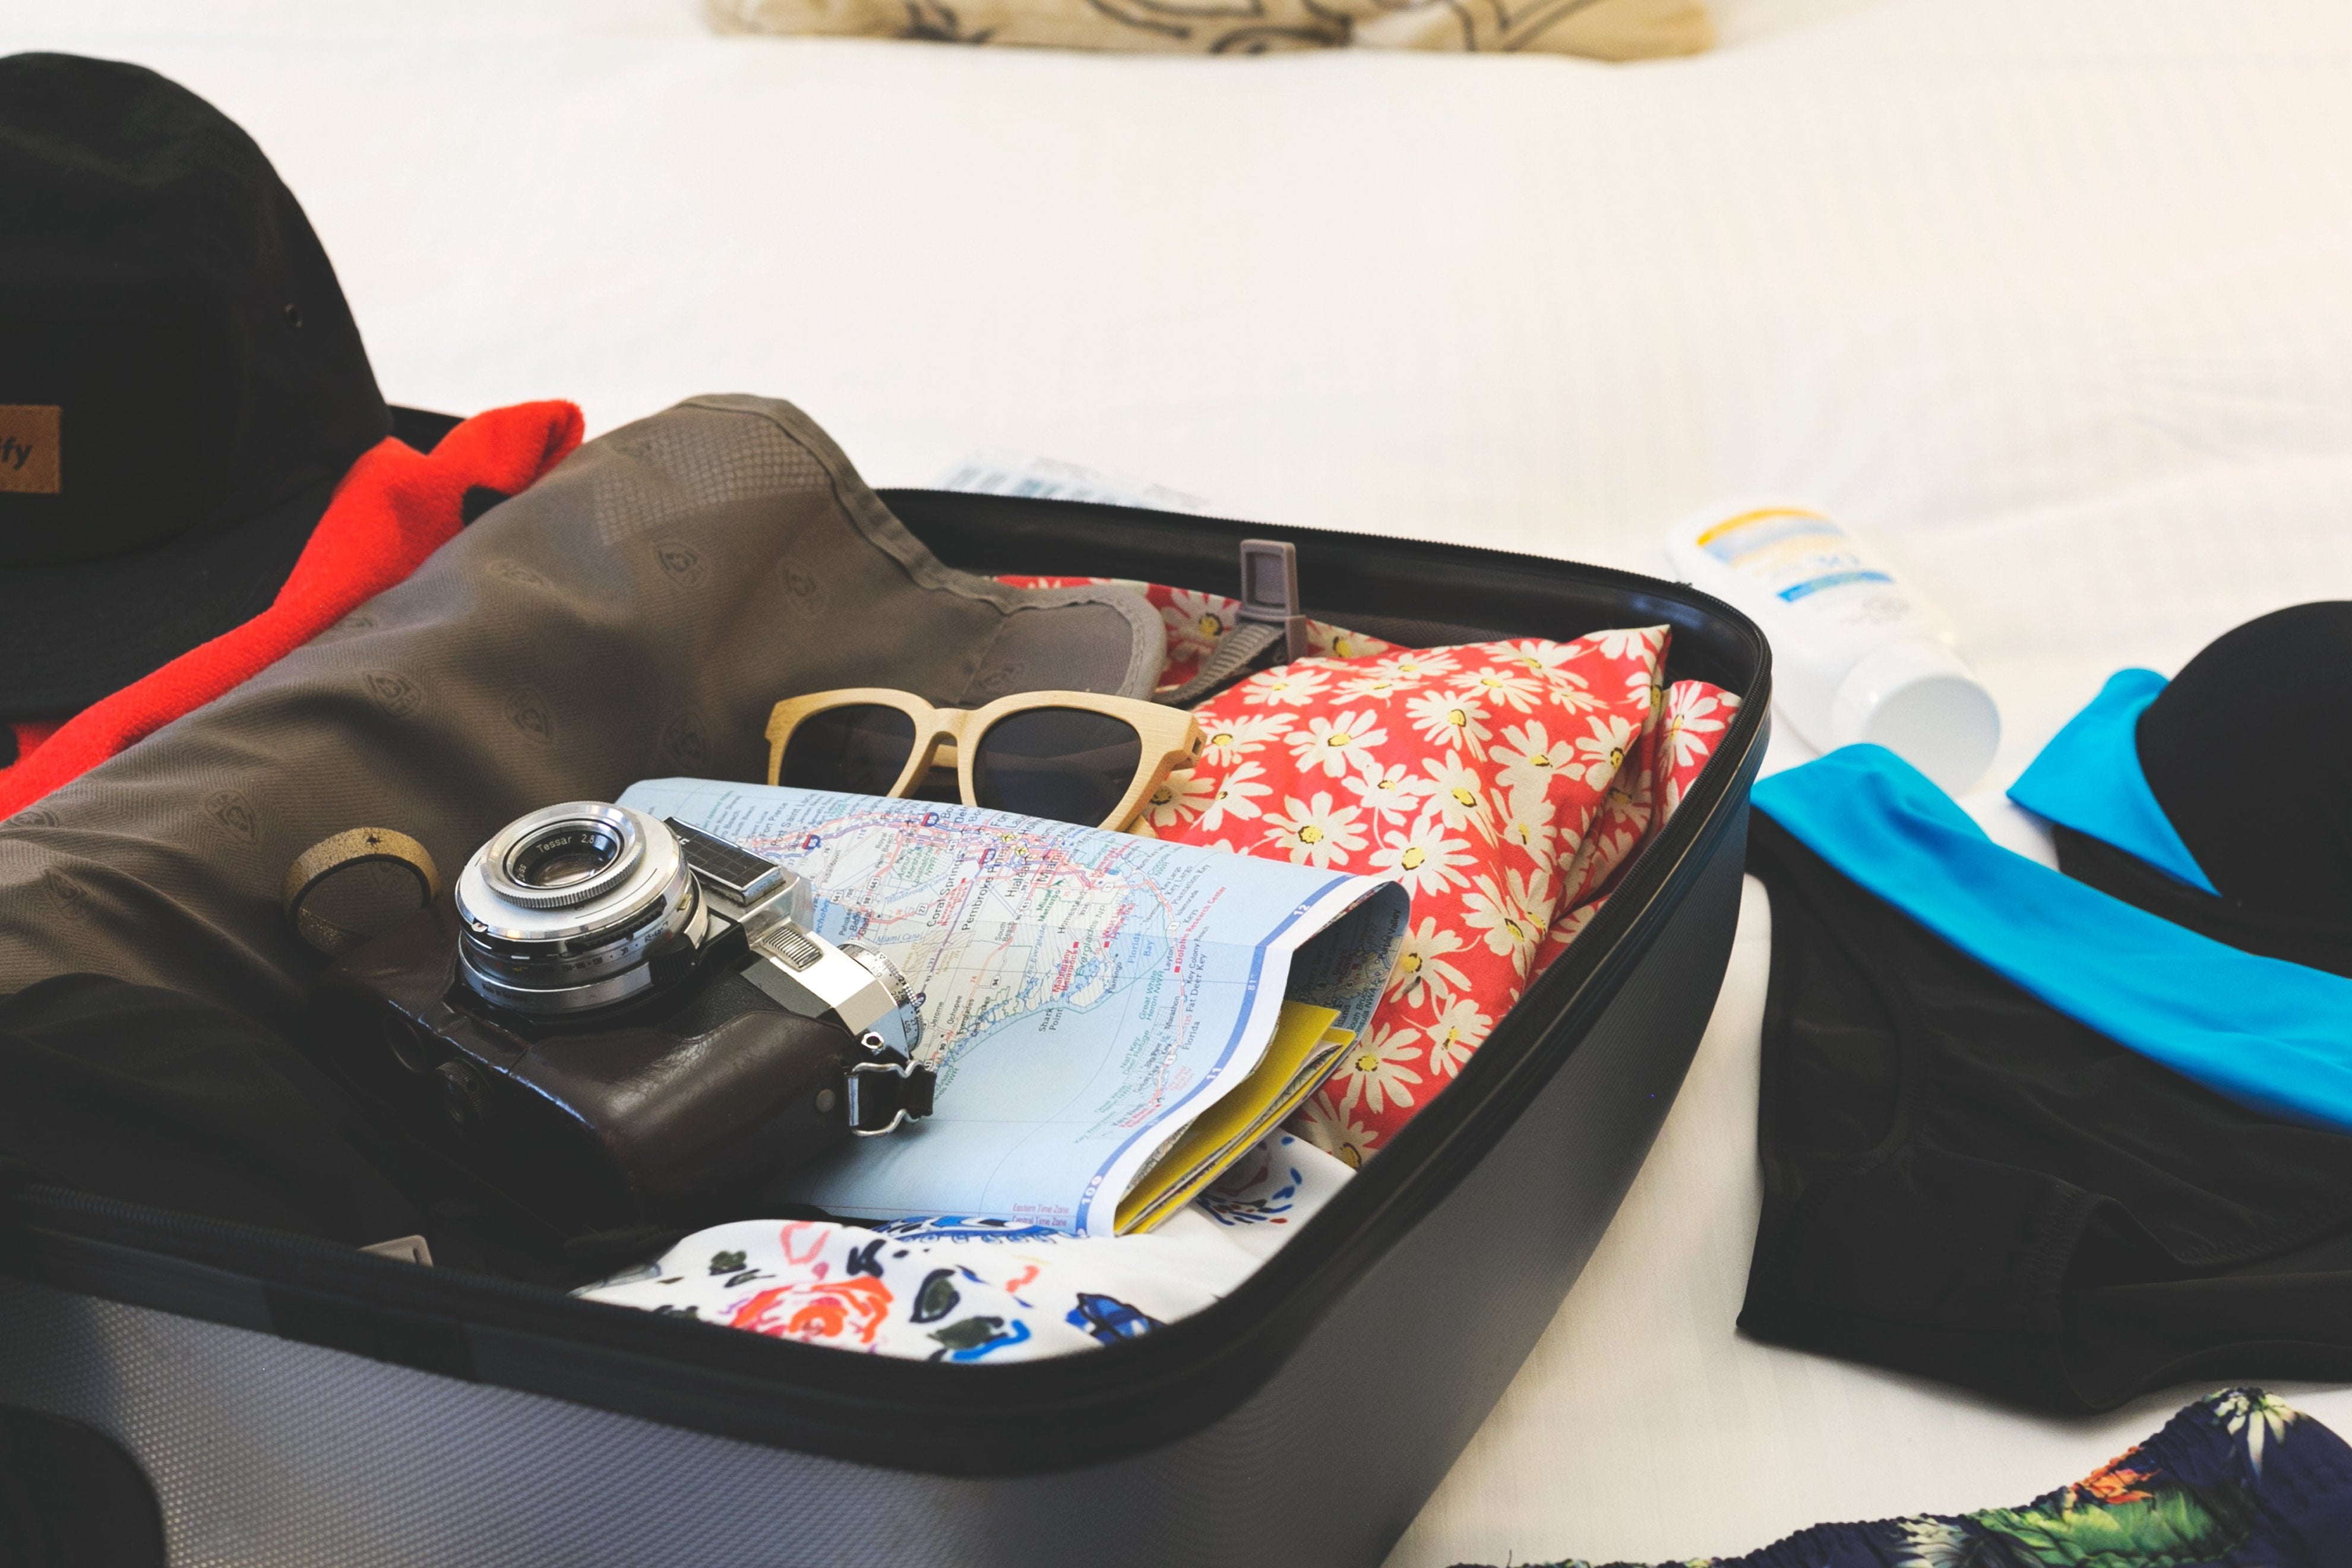 Image showing a suitcase with clothes packed for vacation